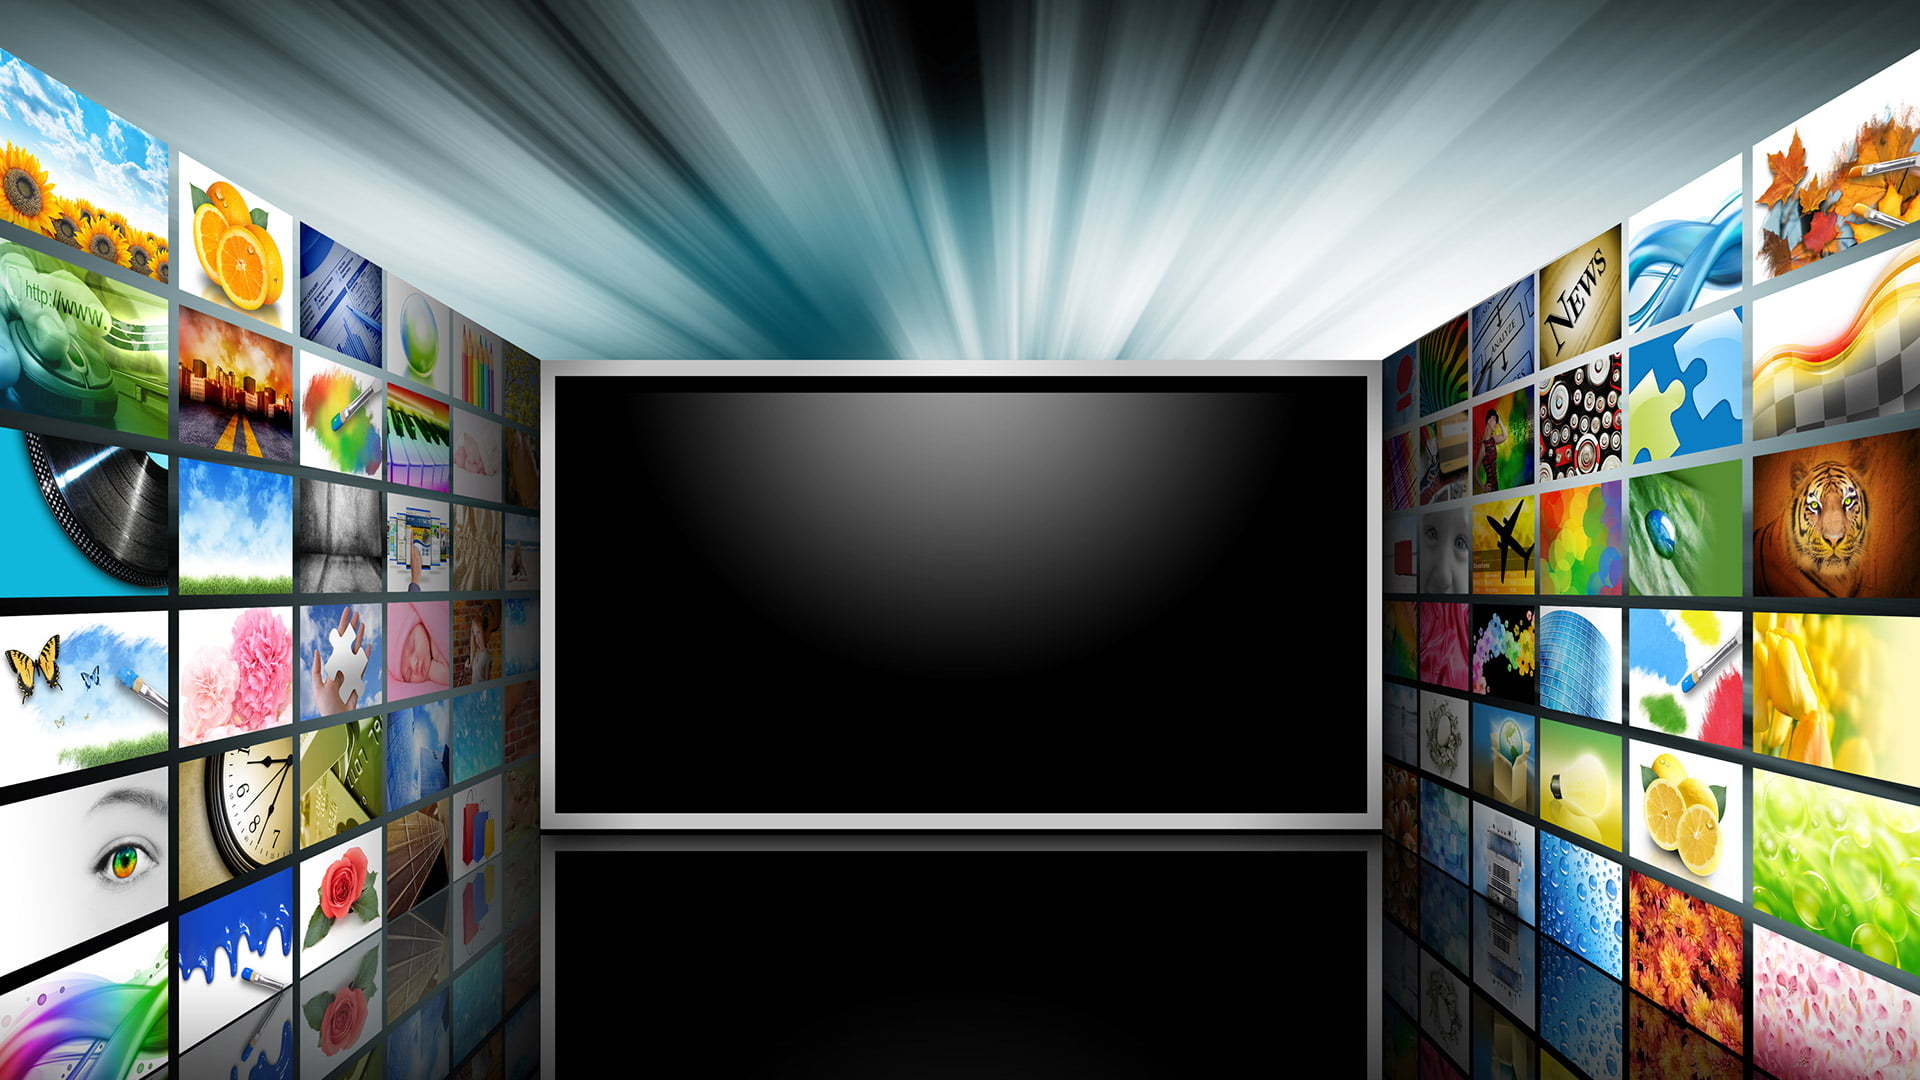 Programmatic TV is the future: Here's how to capitalize on the opportunity